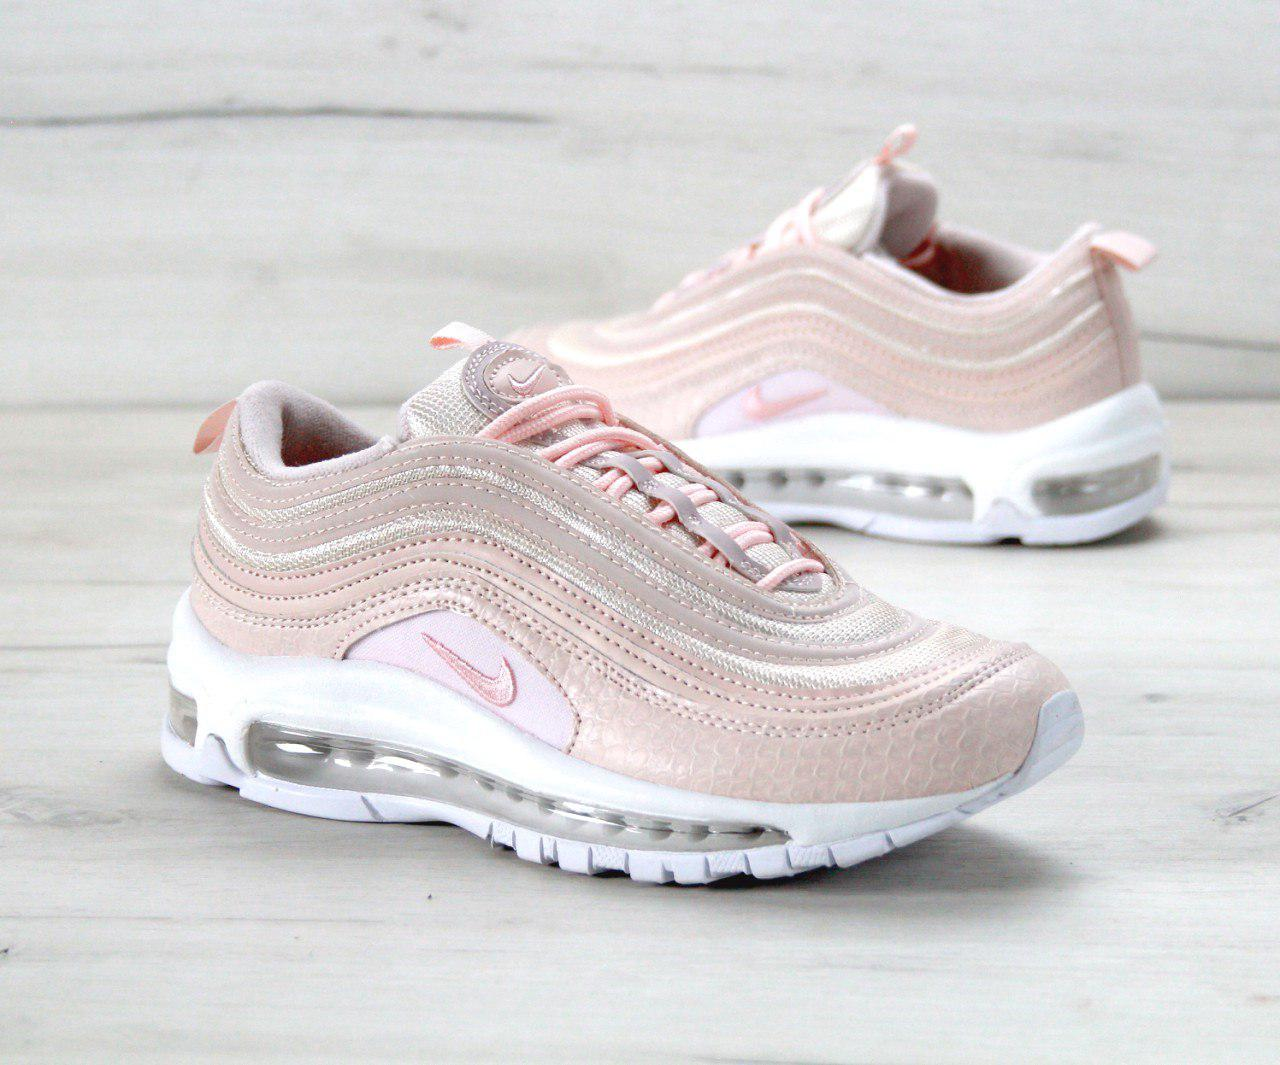 Кроссовки Nike Air Max 97 Pink Scales , фото 2 ...